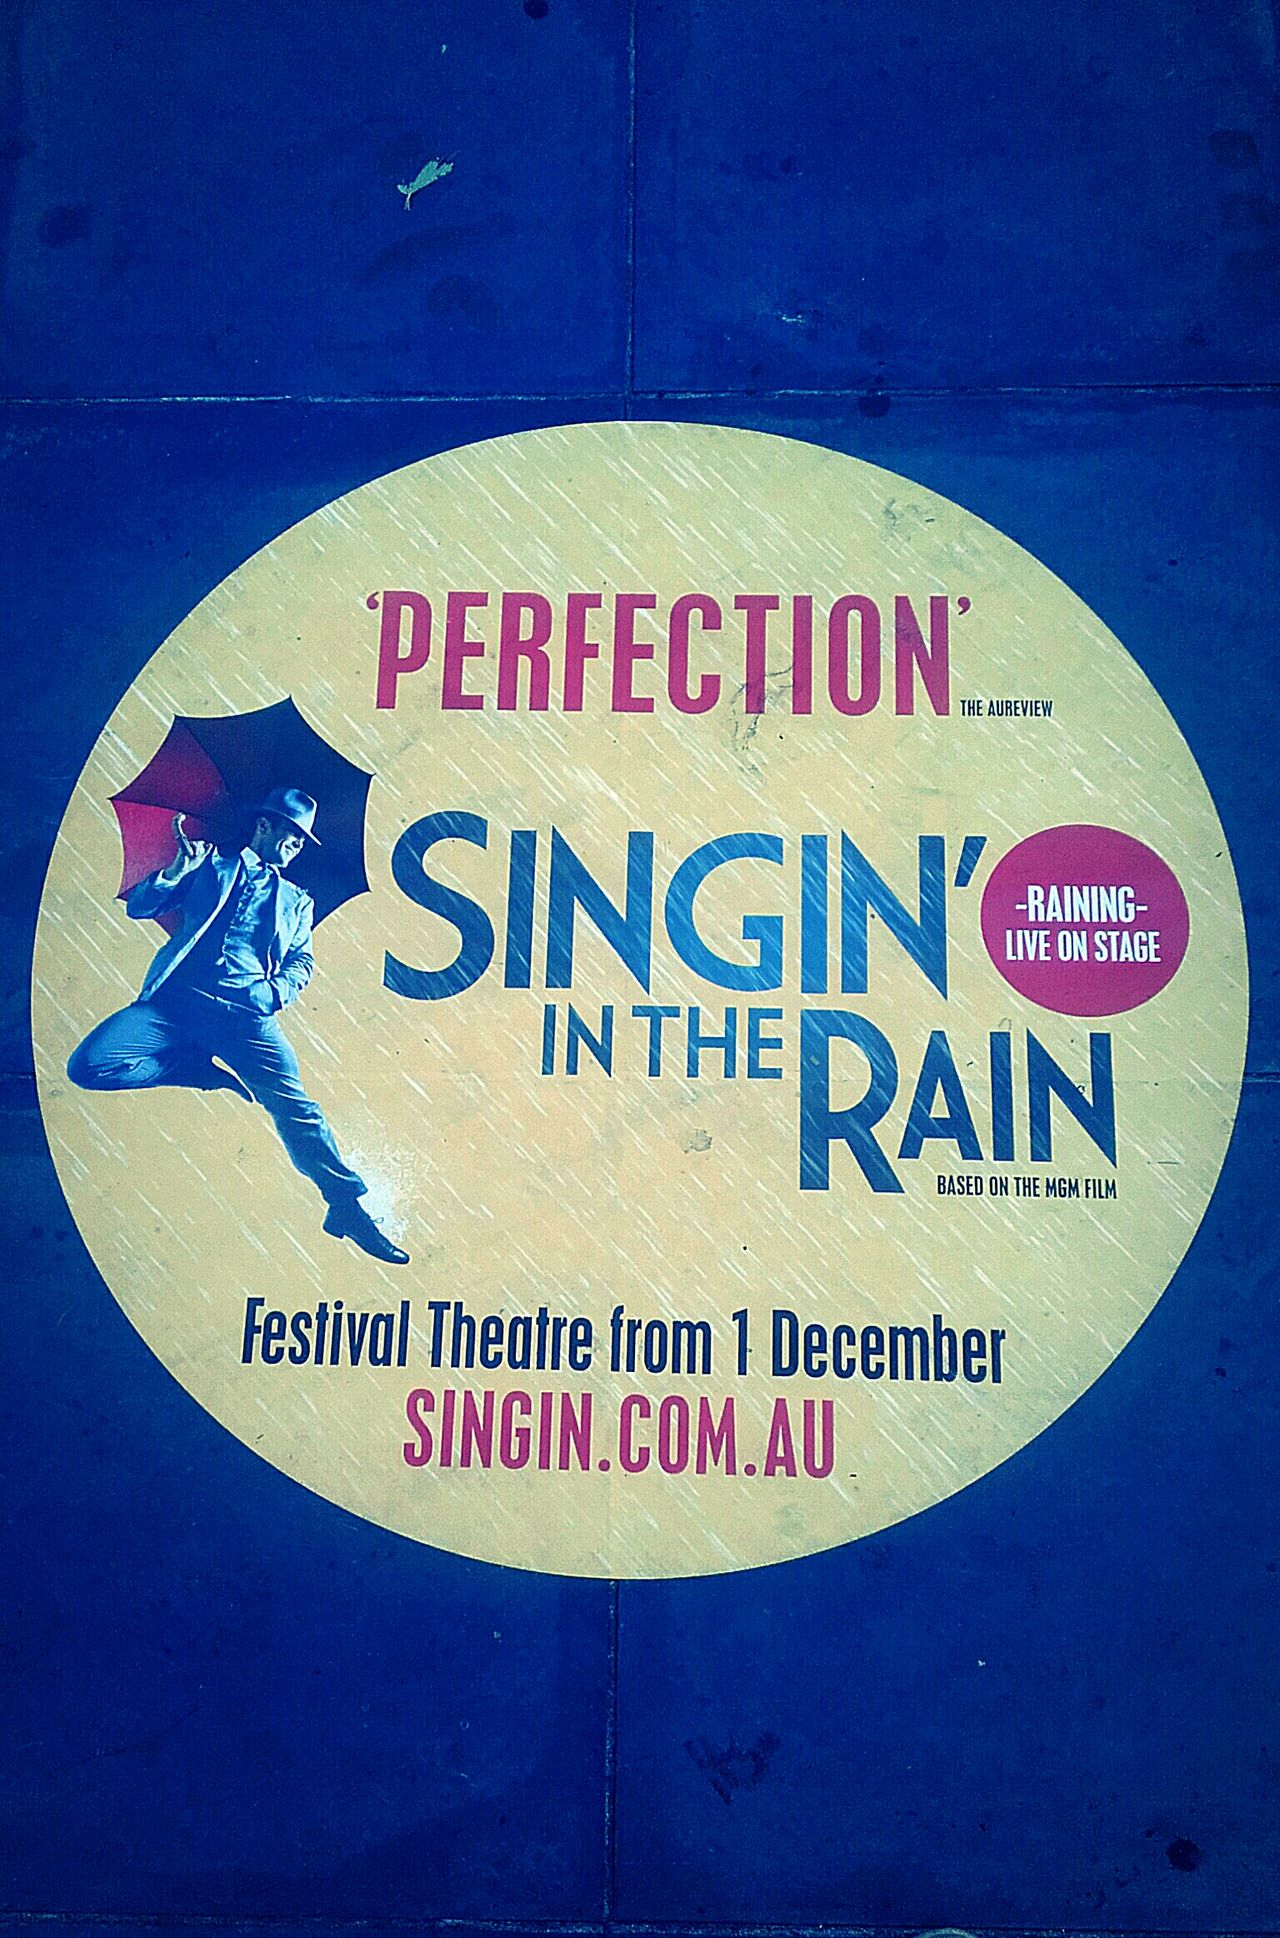 Singing In The Rain Streetphotography Signs Street Photography Singin' In The Rain Sidewalk Discoveries Sidewalk Perfection❤❤❤ Sidewalkphotos Pavementporn Singin.com.au Perfection Advertising Sign Sidewalks Sidewalk Art Sidewalk Photography Sidewalkart SIGN. SignsSignsAndMoreSigns Signs, Signs, & More Signs Signs & More Signs SignSignEverywhereASign Signs_collection SIGNS.